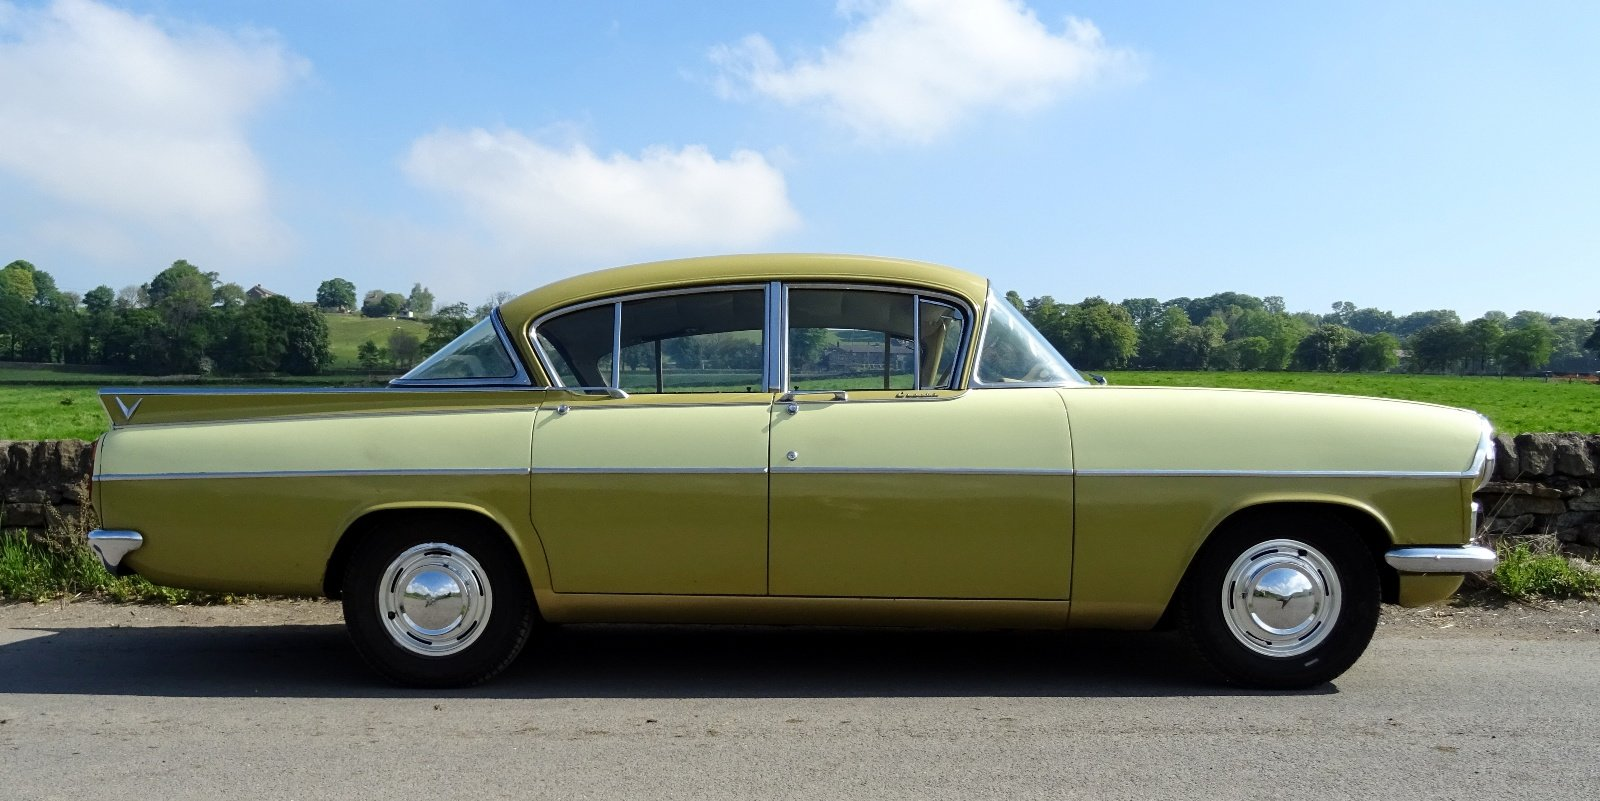 1961 VAUXHALL CRESTA STYLISH CLASSIC RARE COLOUR SCHEME AND SEATS For Sale (picture 4 of 6)